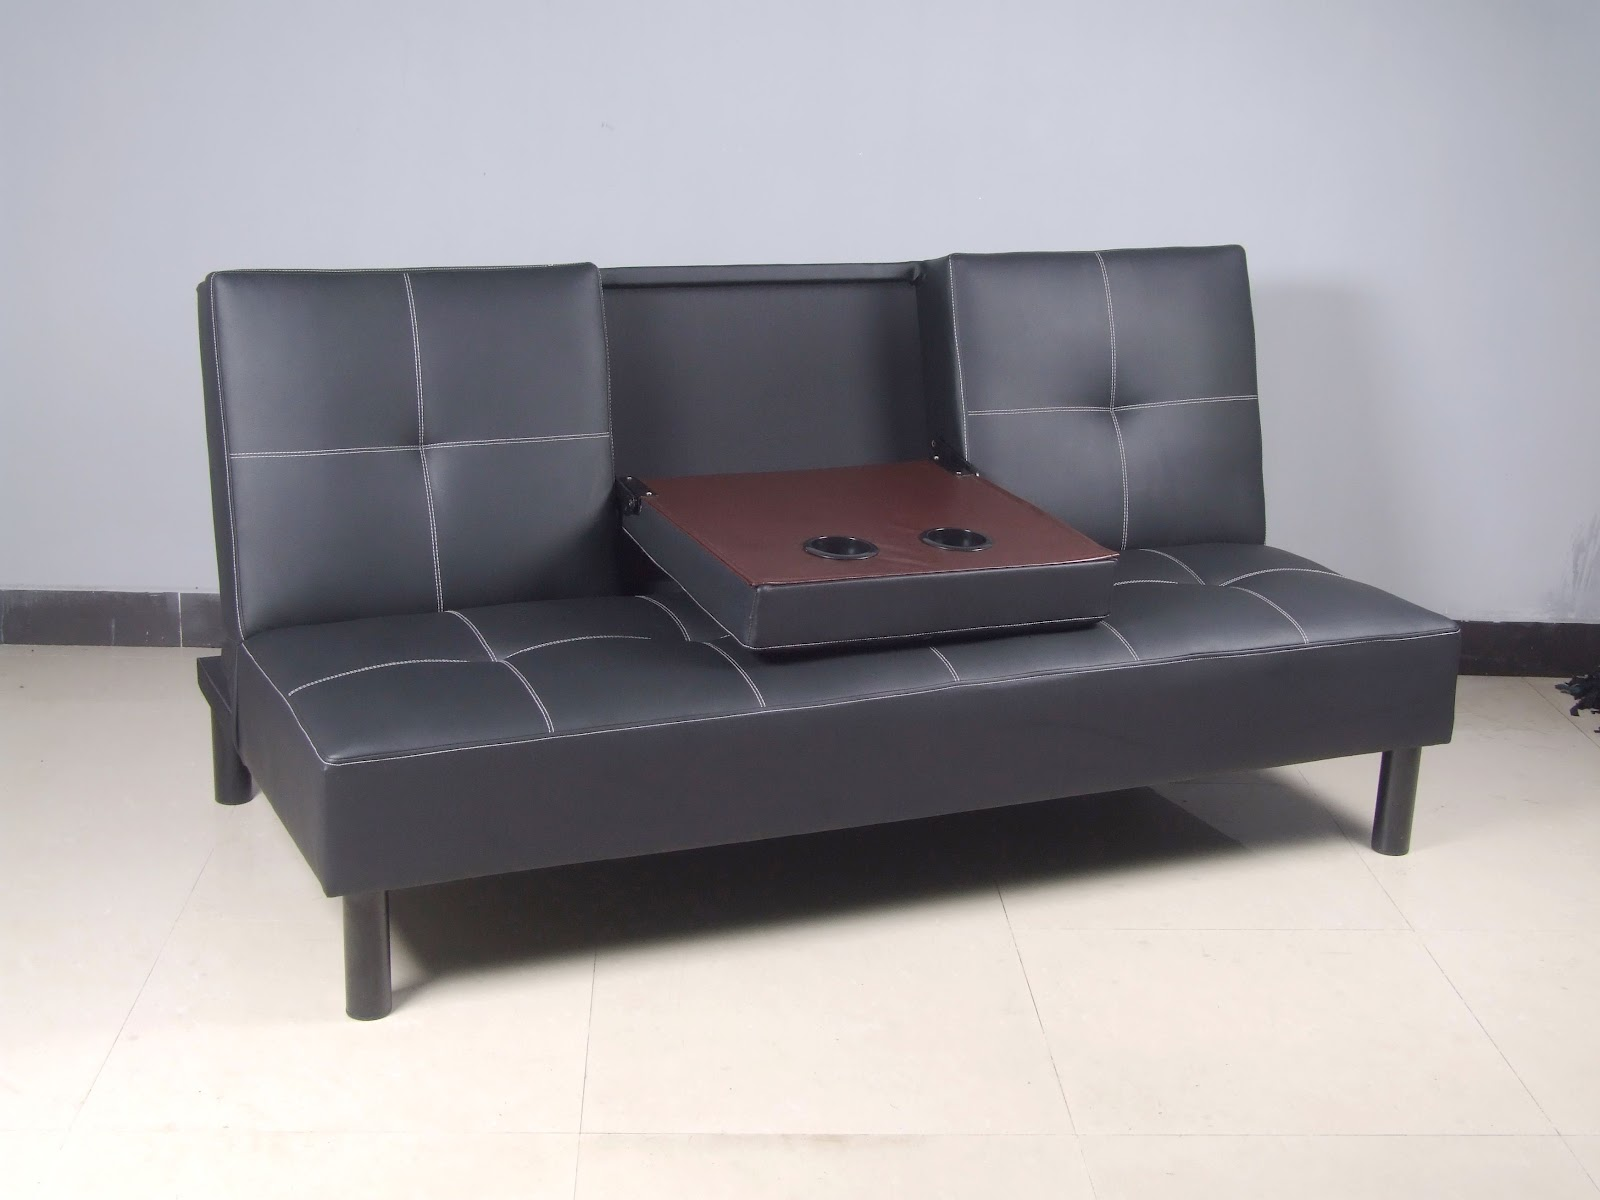 Leather sofa sleeper sectional minimalist home design - Leather sectional sofas for small spaces minimalist ...